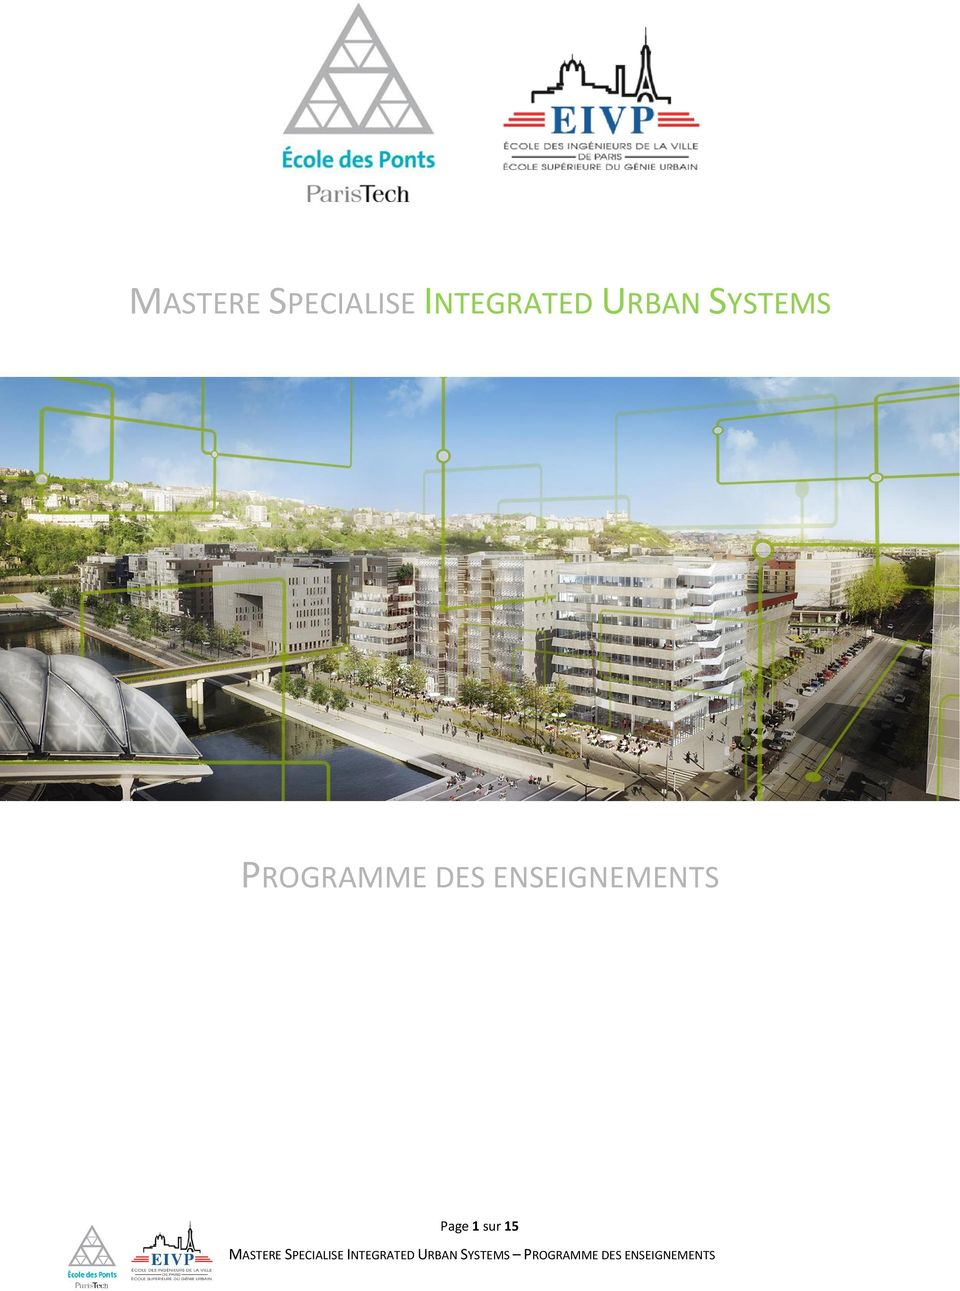 SYSTEMS PROGRAMME DES